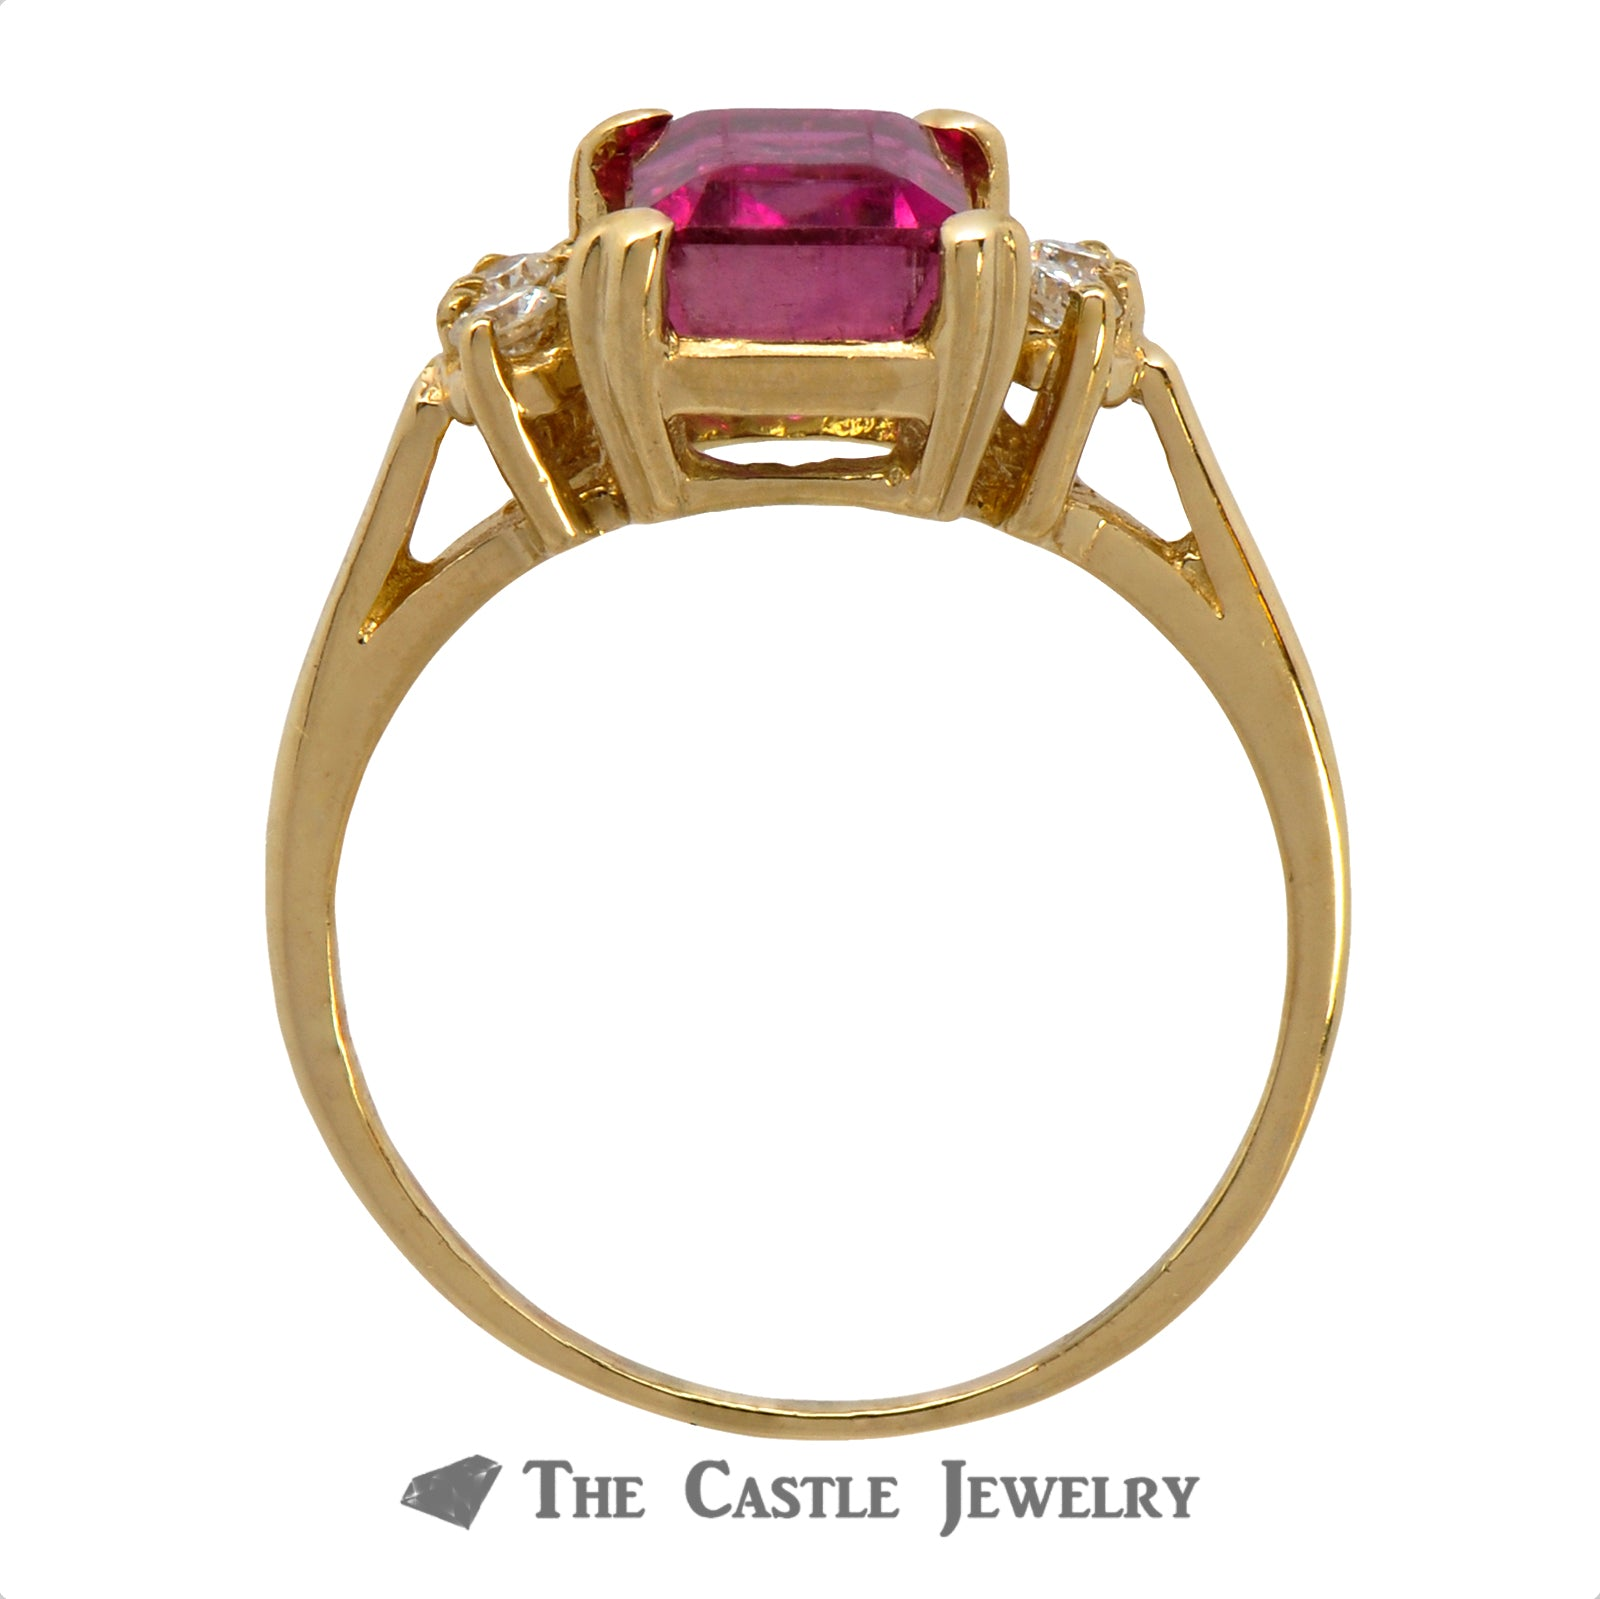 Watermelon Tourmaline Ring with Double Diamond Accents on Each Side Crafted in 14k Yellow Gold-1